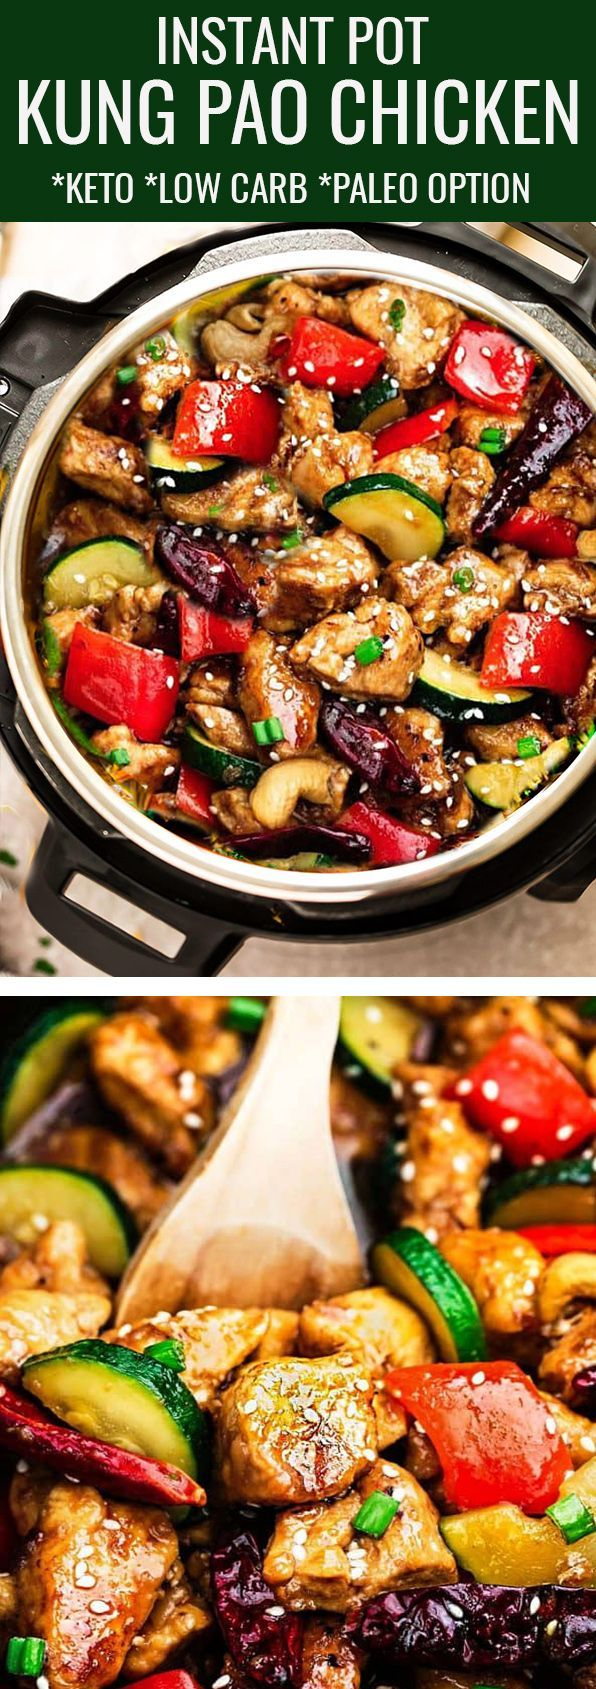 Instant Pot Kung Pao Huhn – Low Carb, Keto, Paleo – Life Made Sweeter